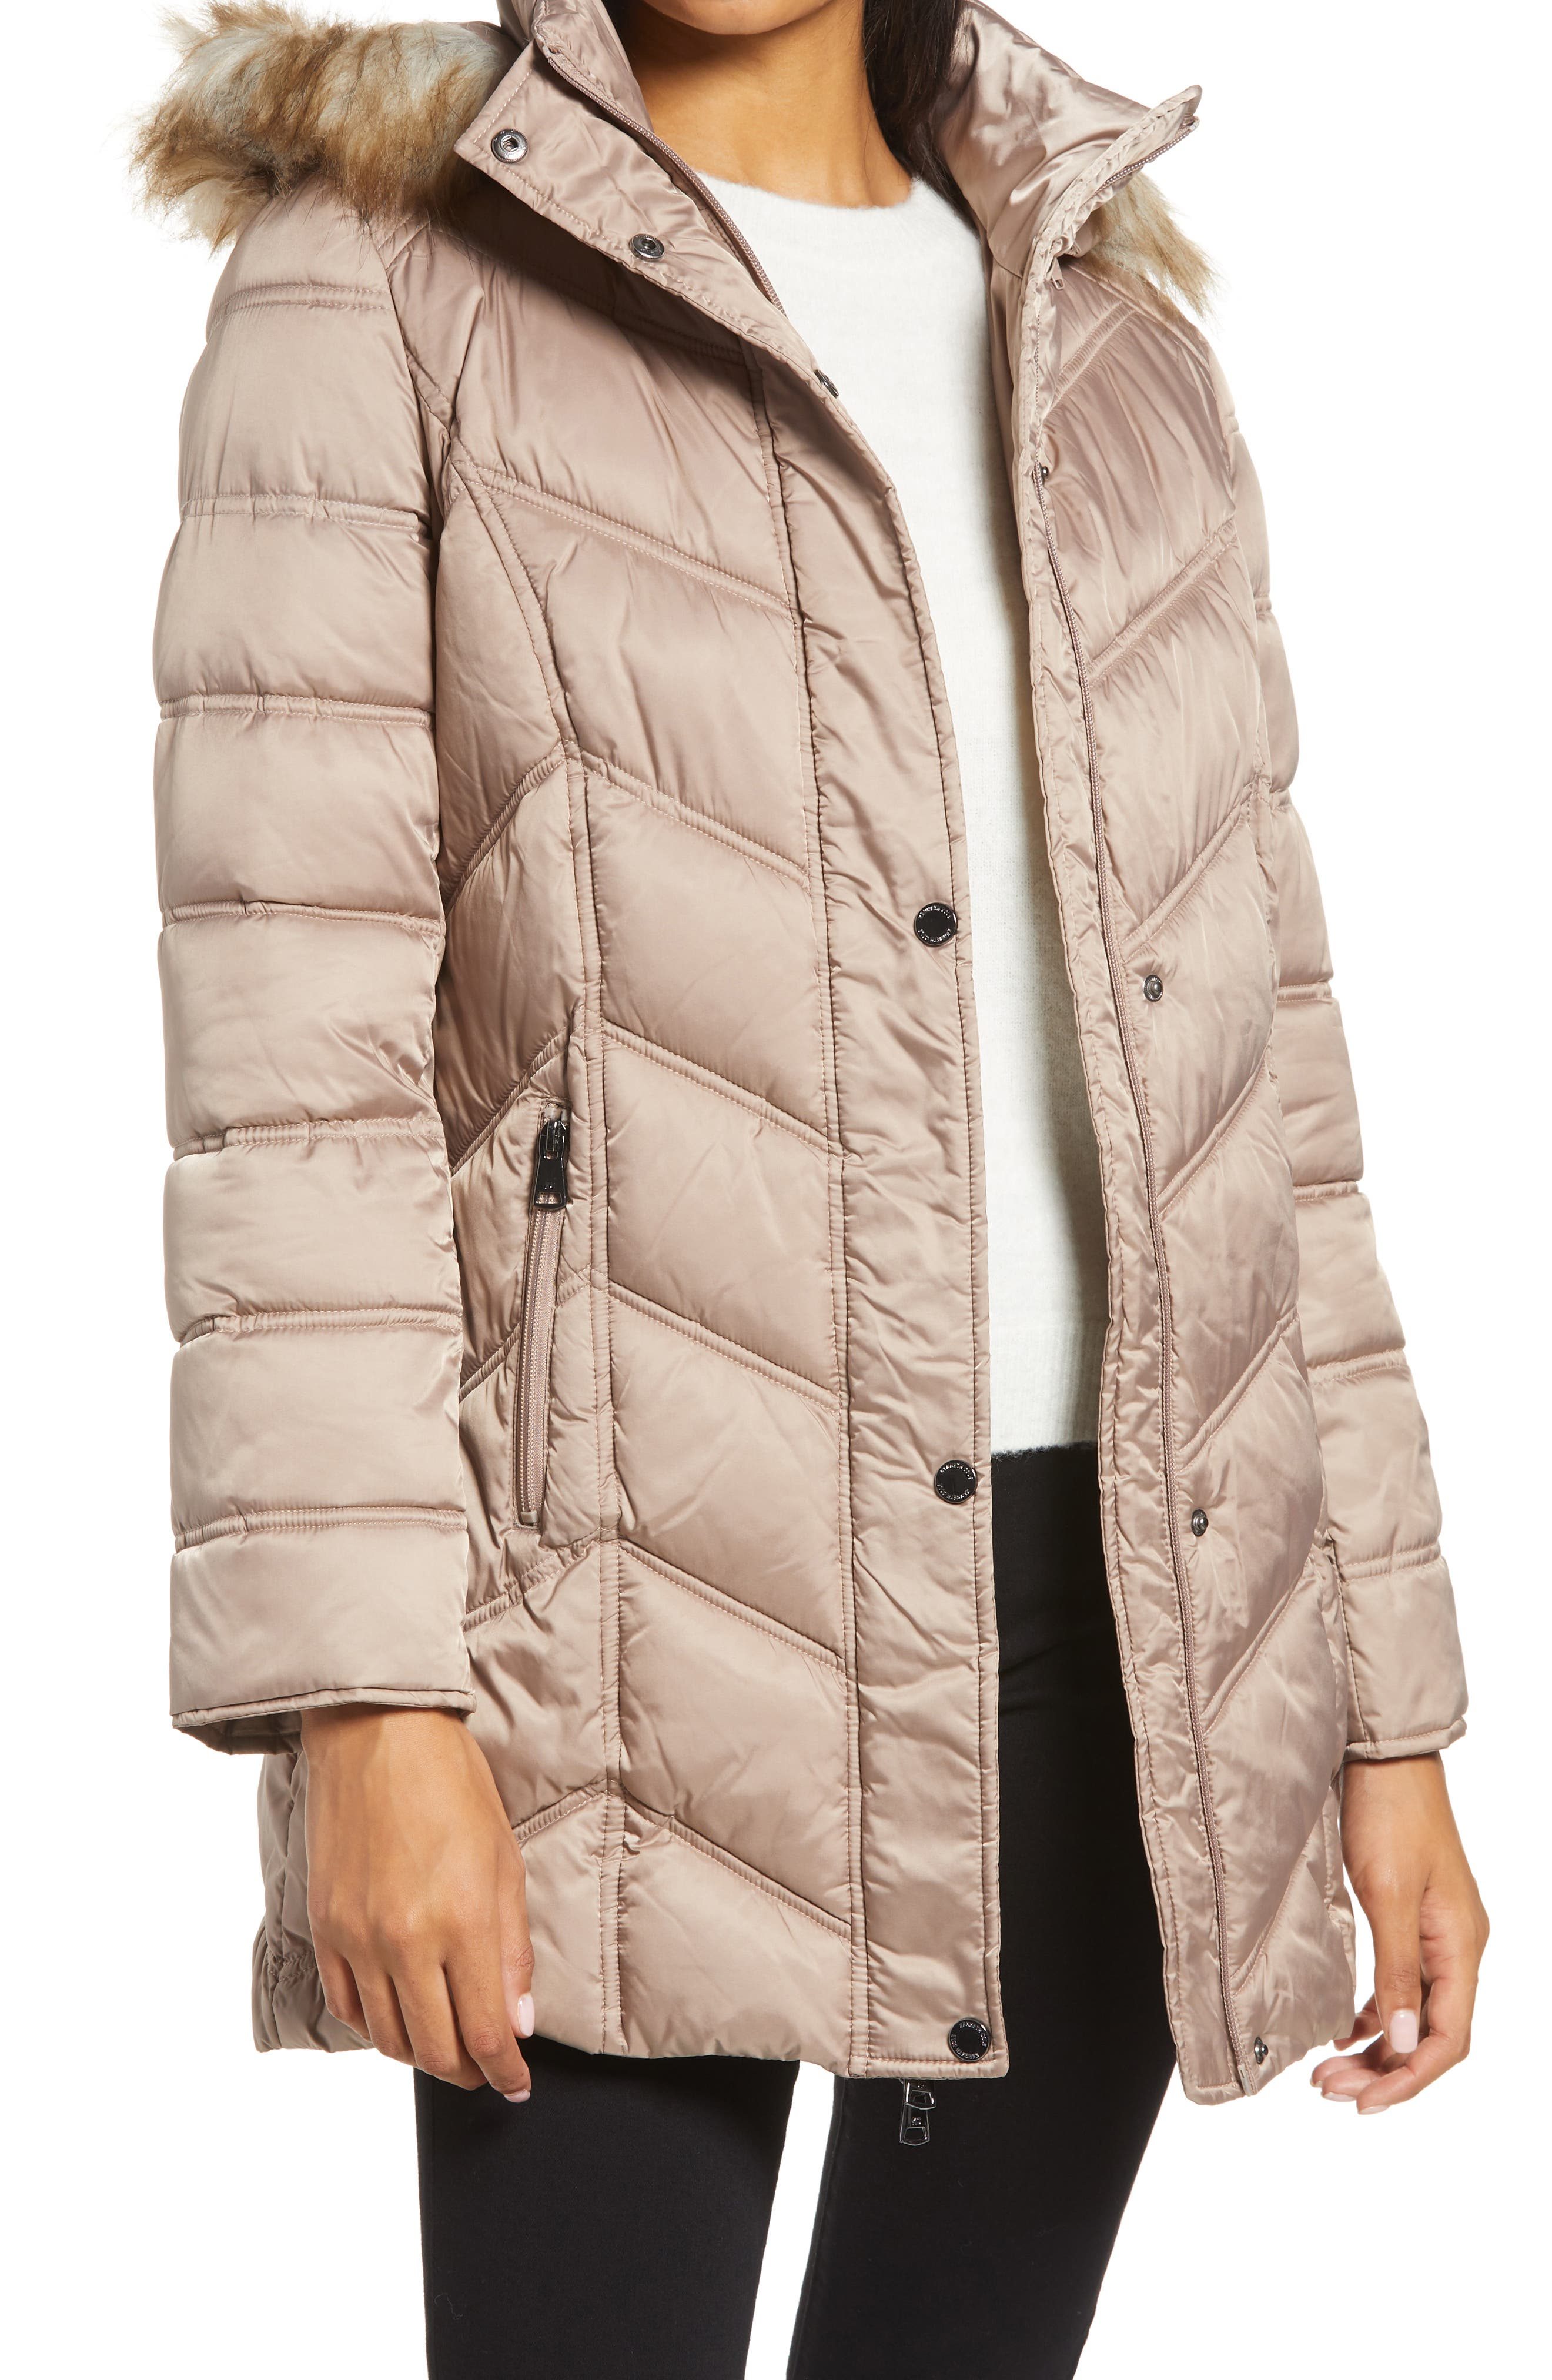 Chevron-shaped quilting puts a contemporary twist on a classic puffer jacket styled with a removable hood trimmed in sumptuous faux fur. Style Name: Kenneth Cole New York Faux Fur Trim Puffer Jacket. Style Number: 5680926. Available in stores.